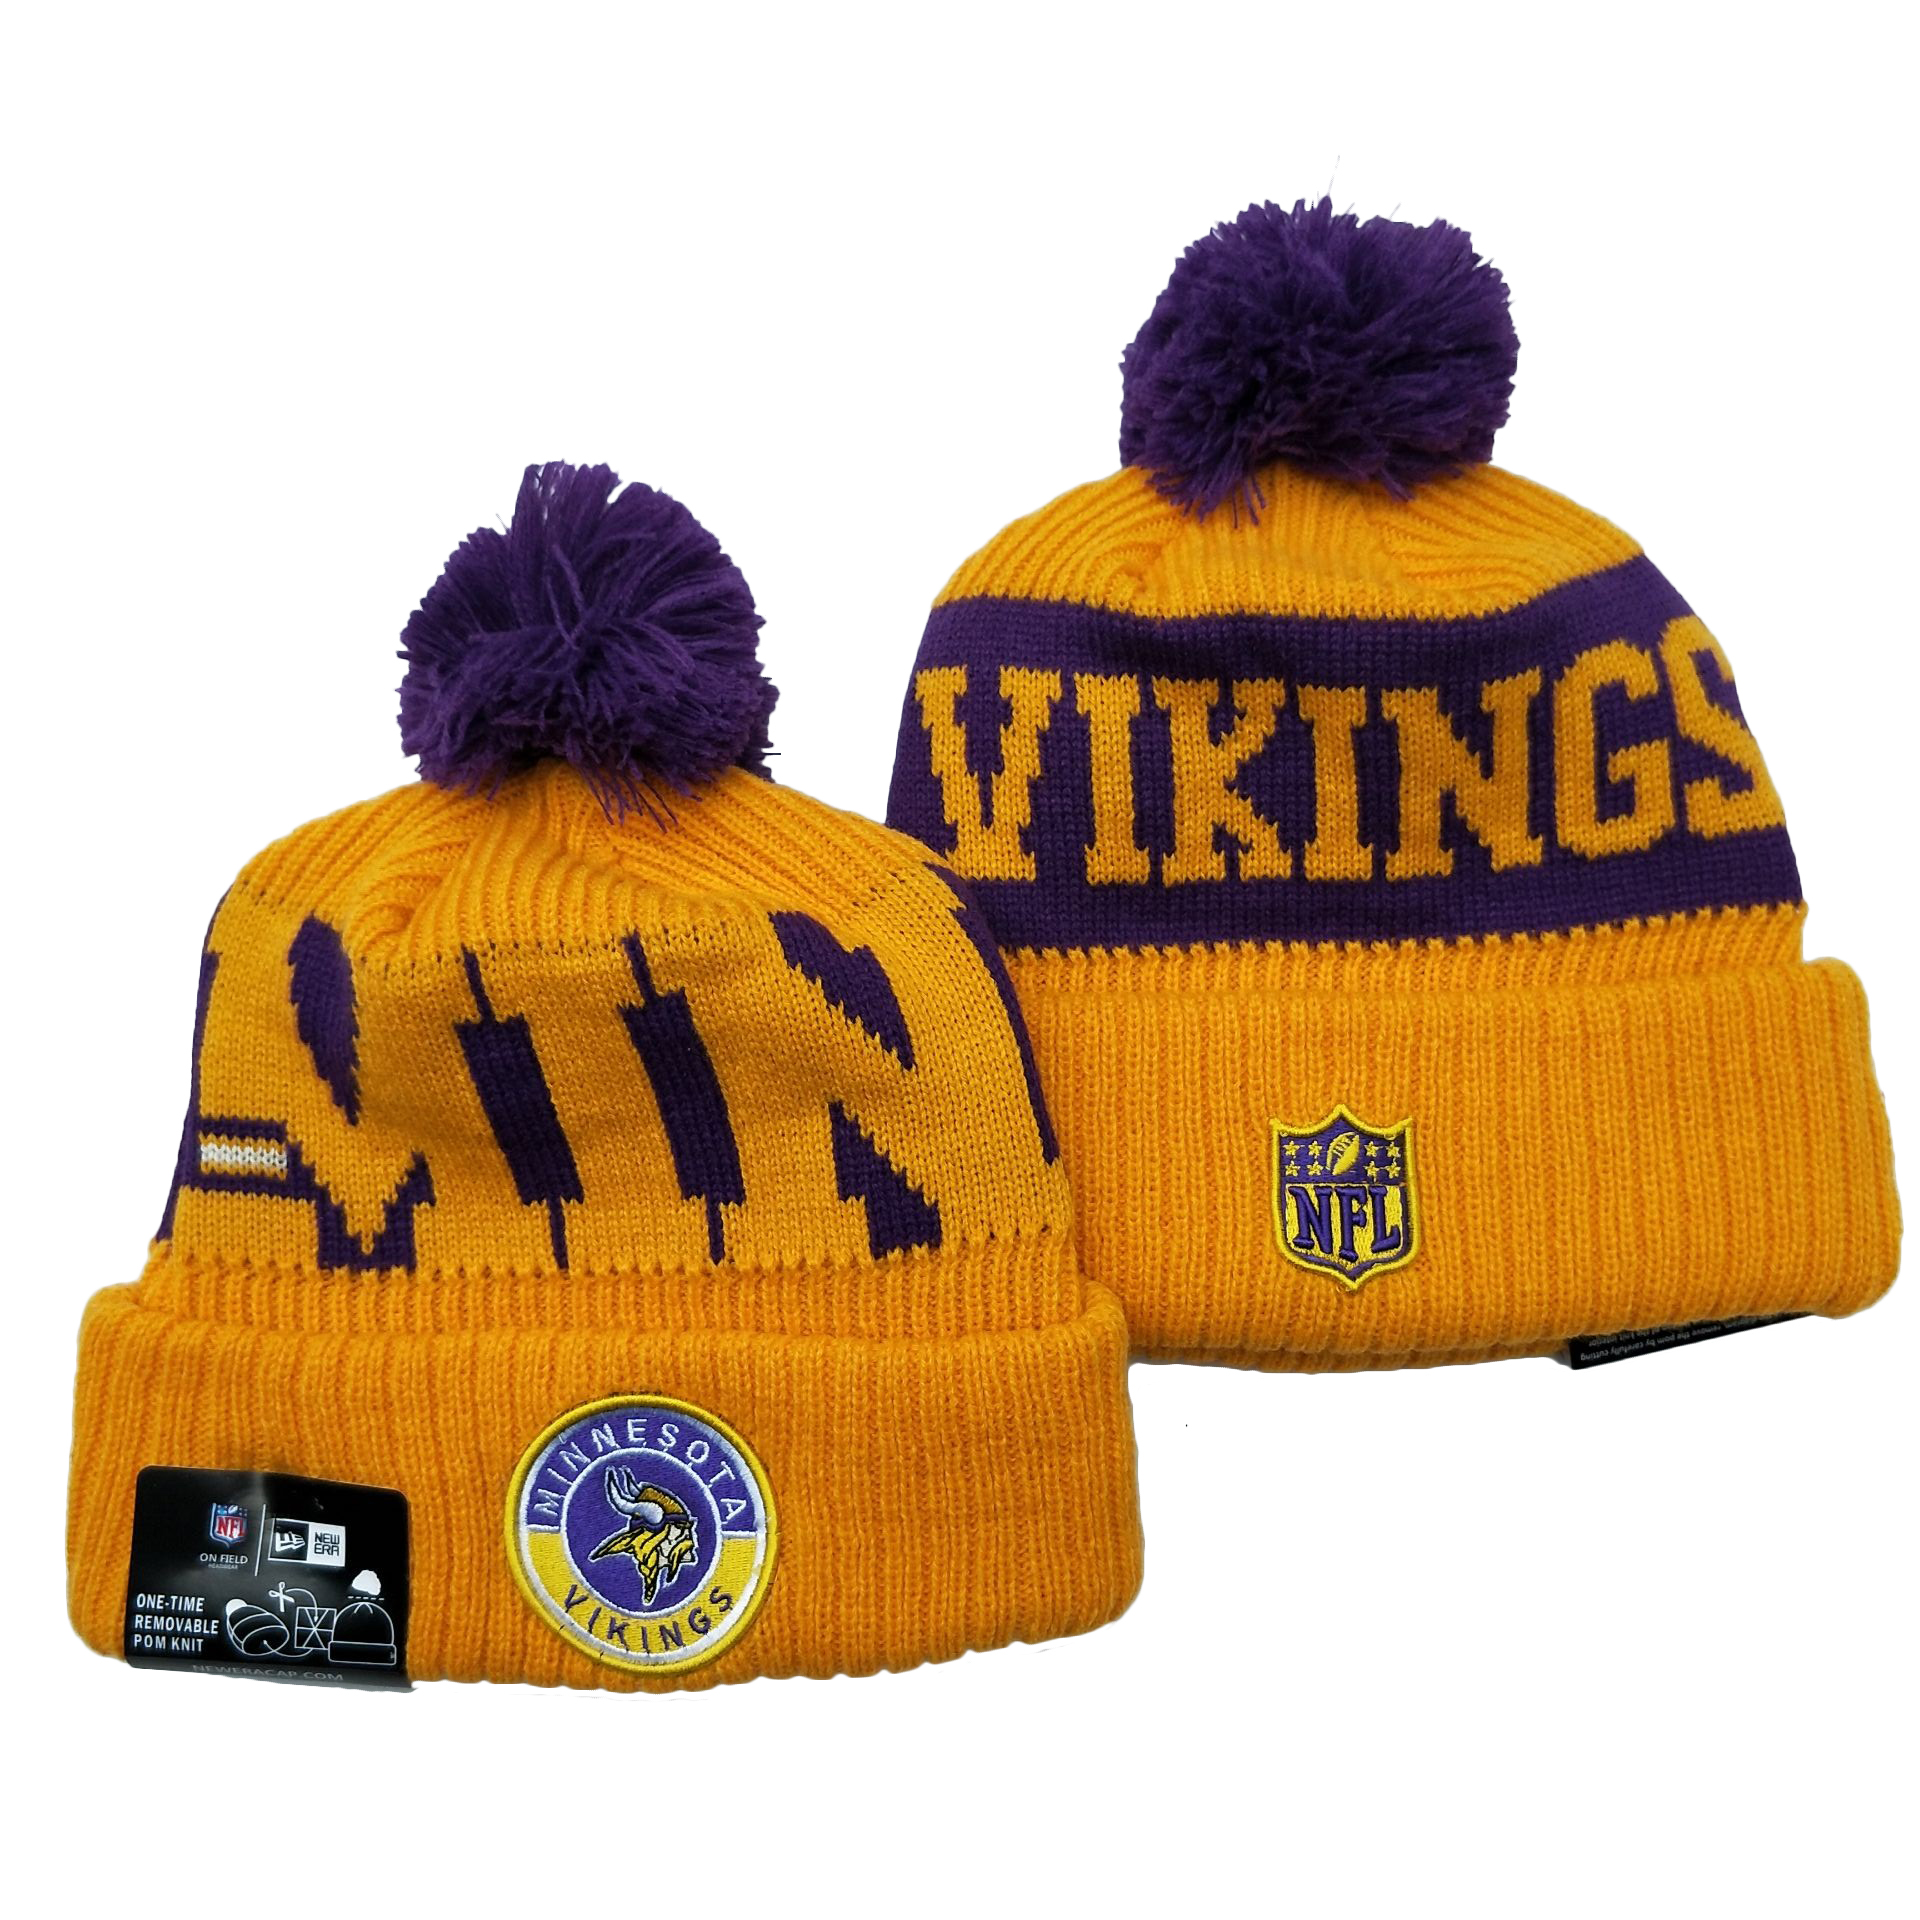 Vikings Team Logo Yellow 2020 NFL Sideline Pom Cuffed Knit Hat YD